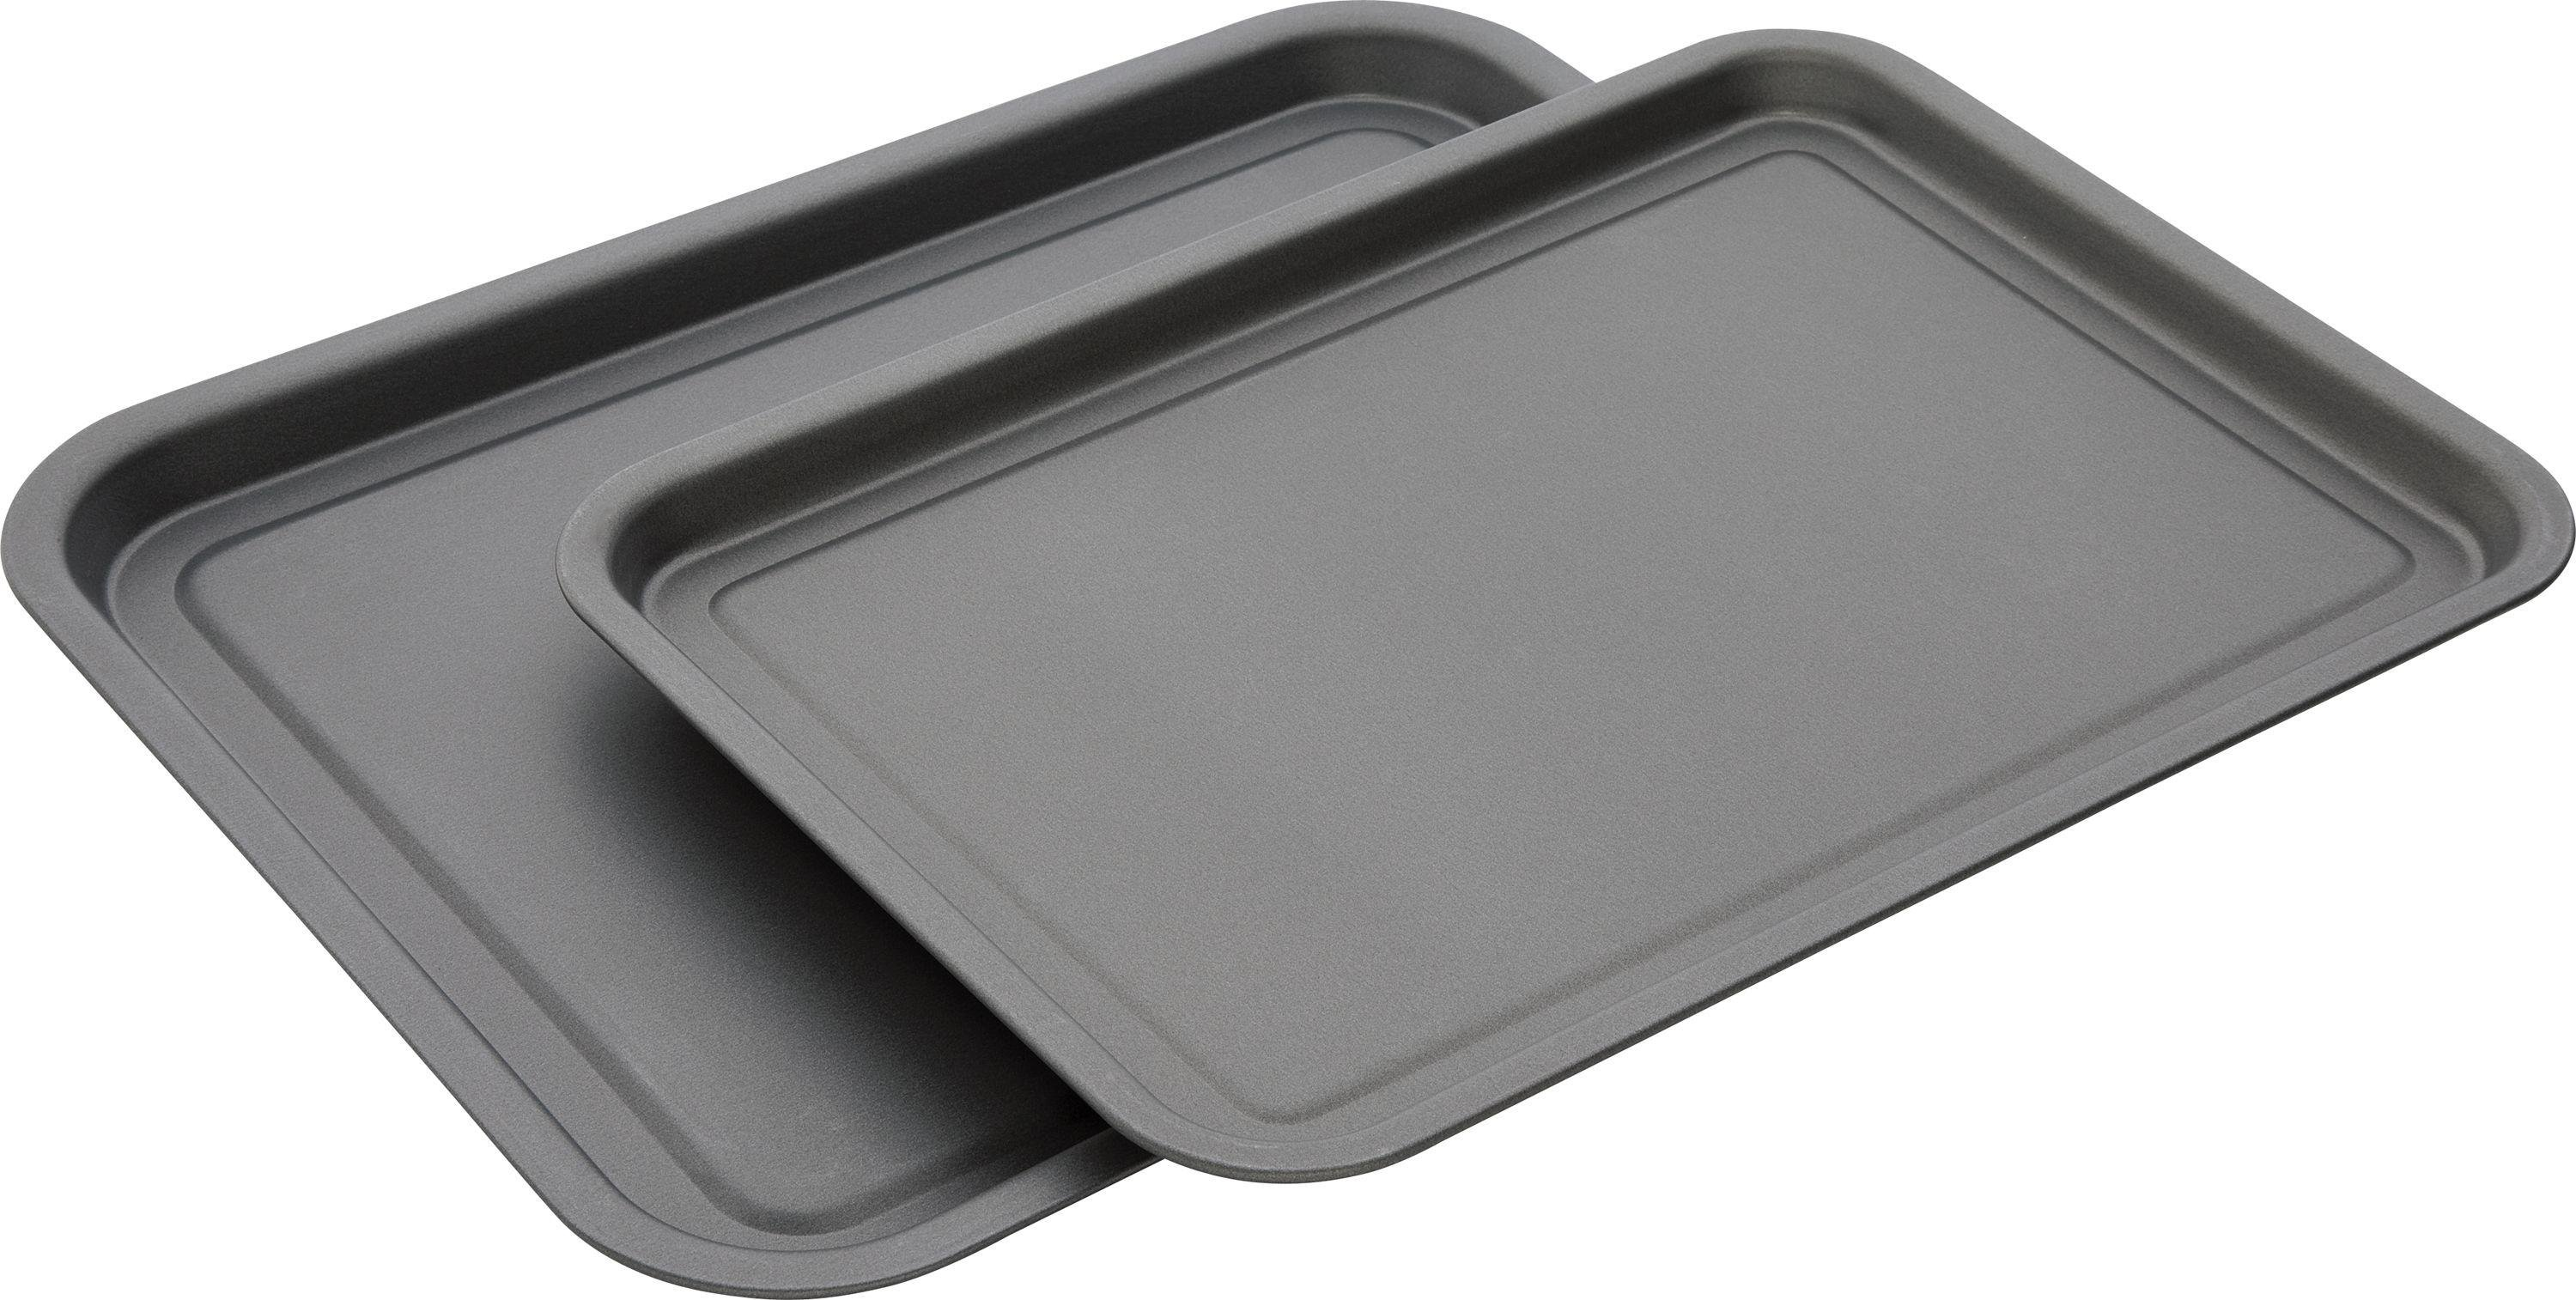 Image of HOME - 2 Piece Non-Stick Oven Tray Set